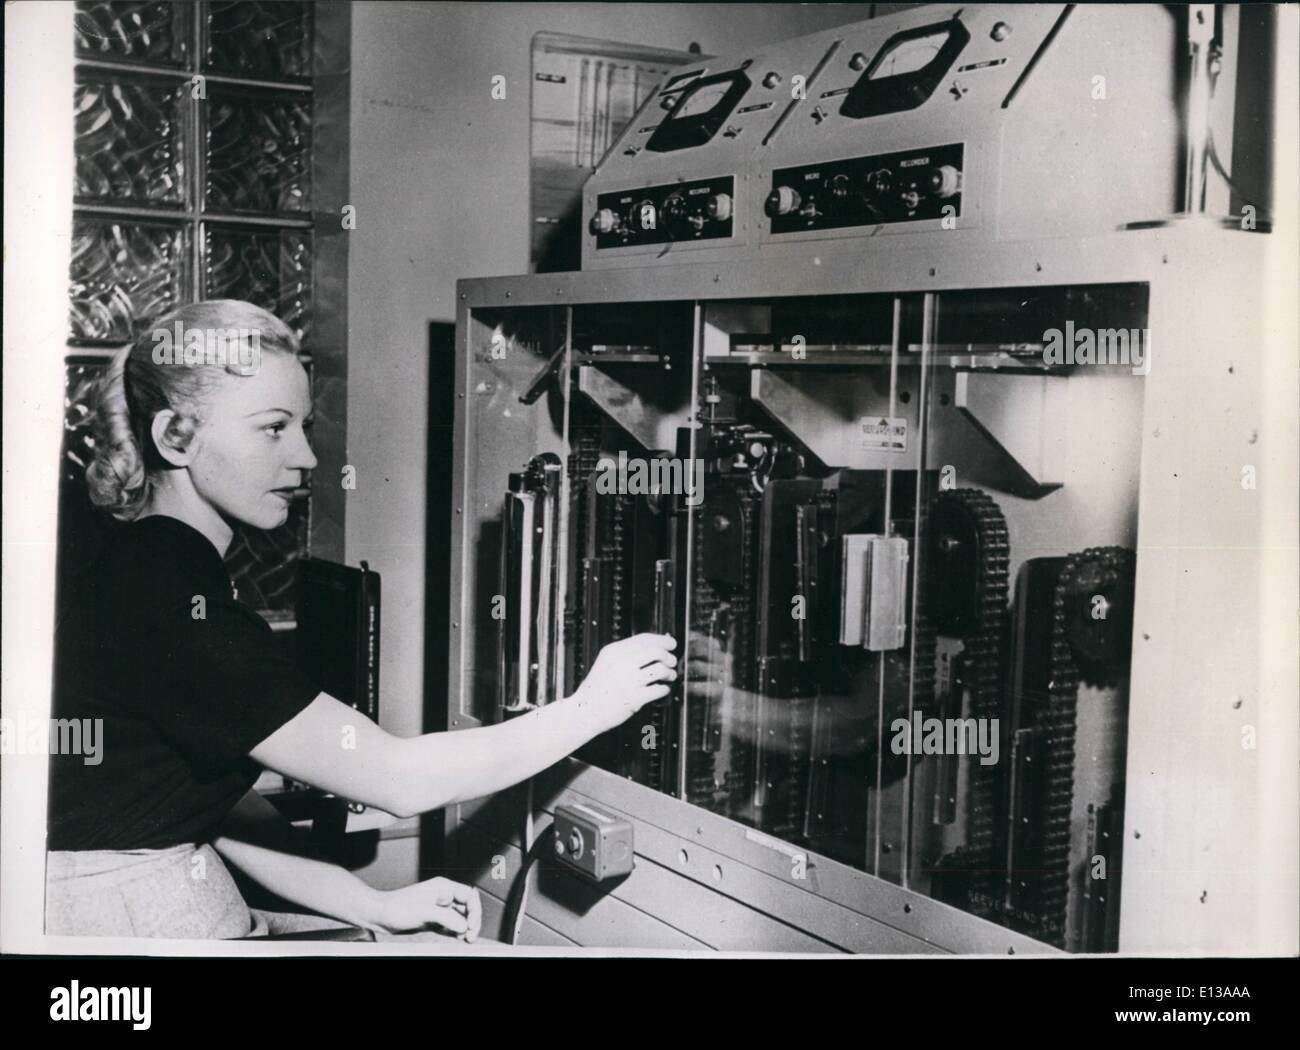 Feb. 29, 2012 - You are always within call'' with the ''Mechanicall'' new invention in use in new york. ''Mechanicall'' is the name of an invention which has been cut into service in new york - and which should prove to be invaluable to businessmen - particularly doctors. The machine holds 60 audio slides that call to all, listeners mechanical subscribers carry an air-call receiver which weighs 7 czs. and is 6 inches high - and can be comfortably carried in the pocket. when a subscriber is out traveling -etc - Stock Image